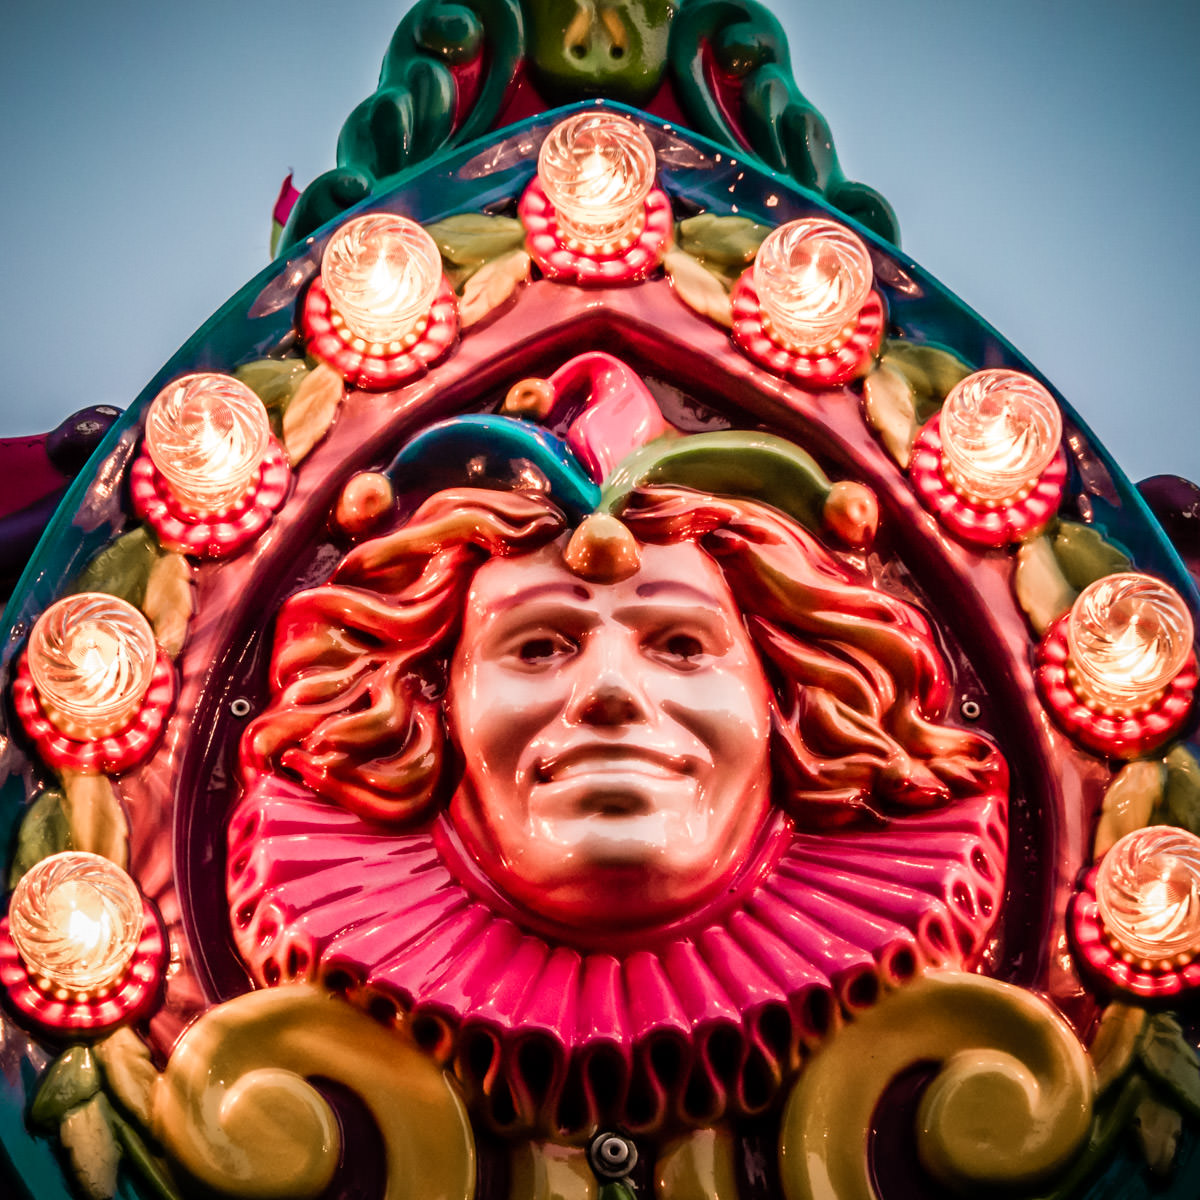 Detail of a carnival ride at Addison Oktoberfest, Addison, Texas.